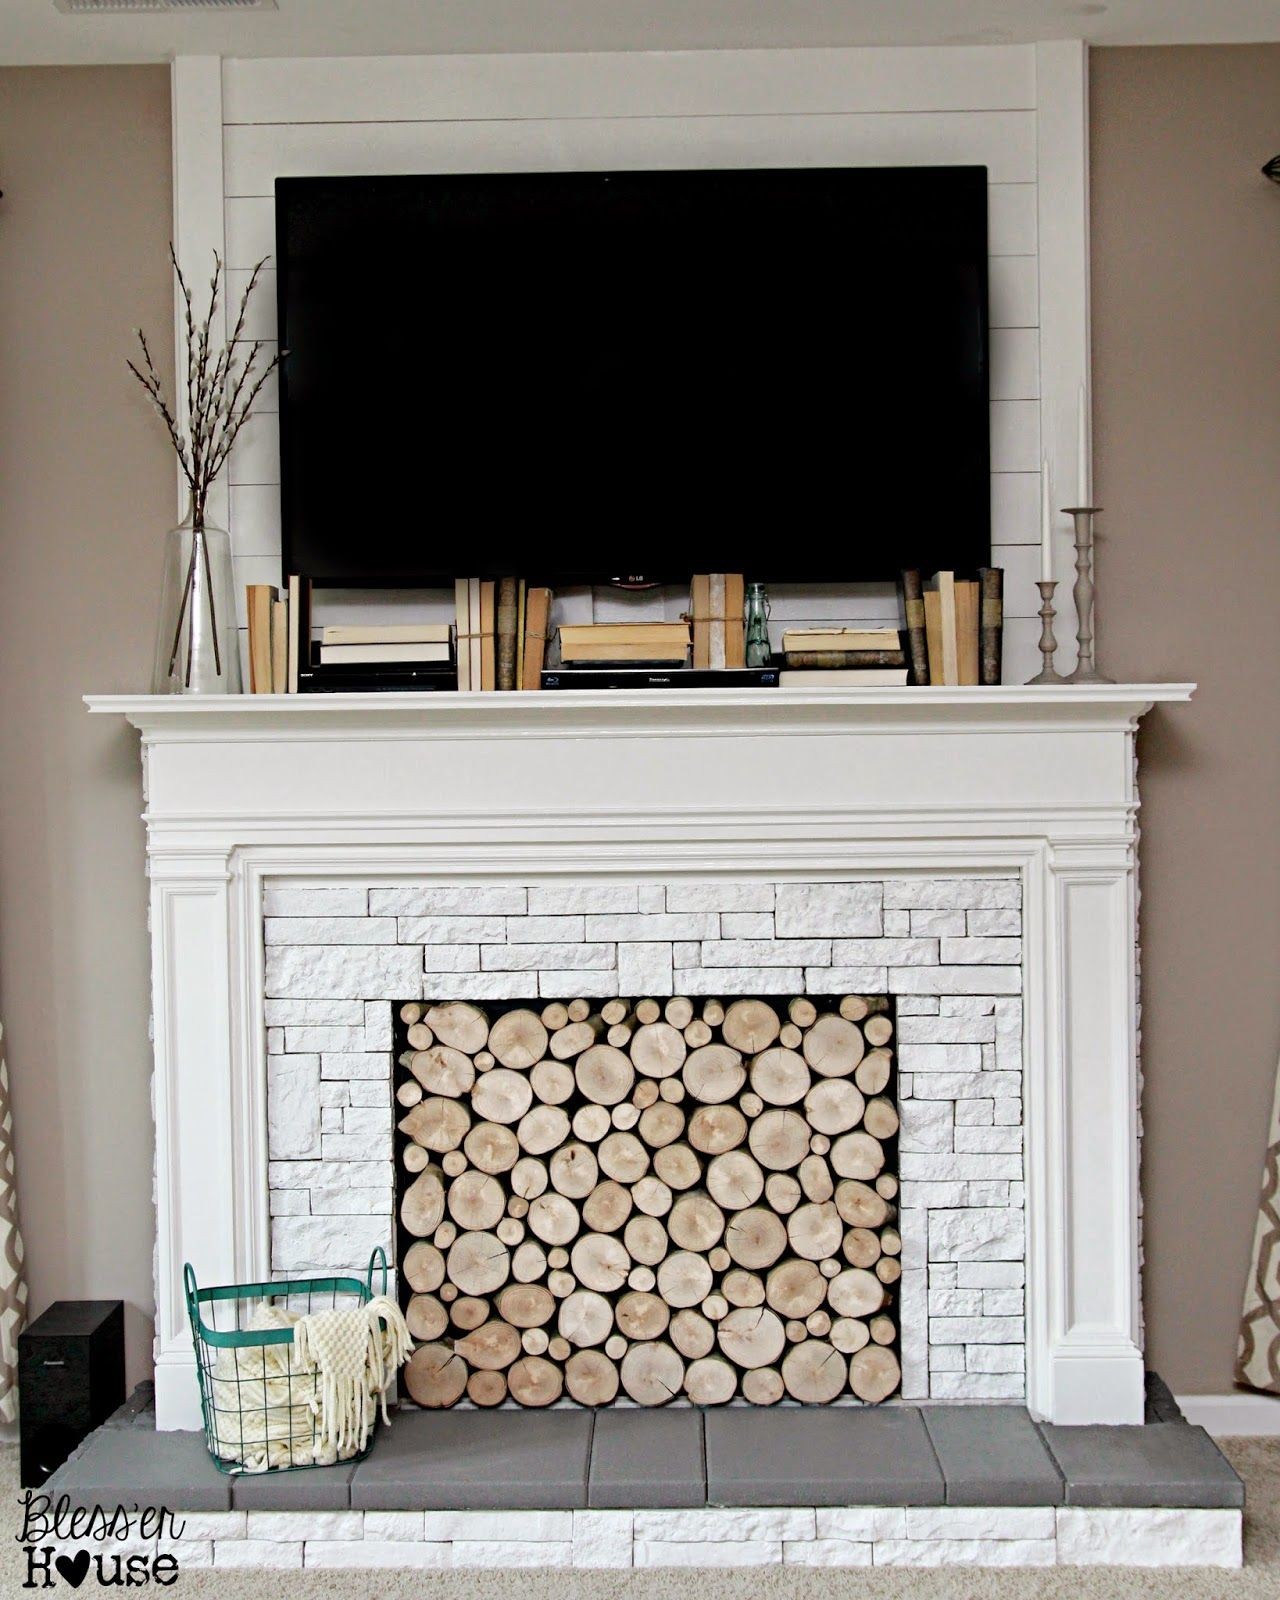 Faux Fireplace Insert Diy Faux Fireplace For Under 600 The Big Reveal Faux